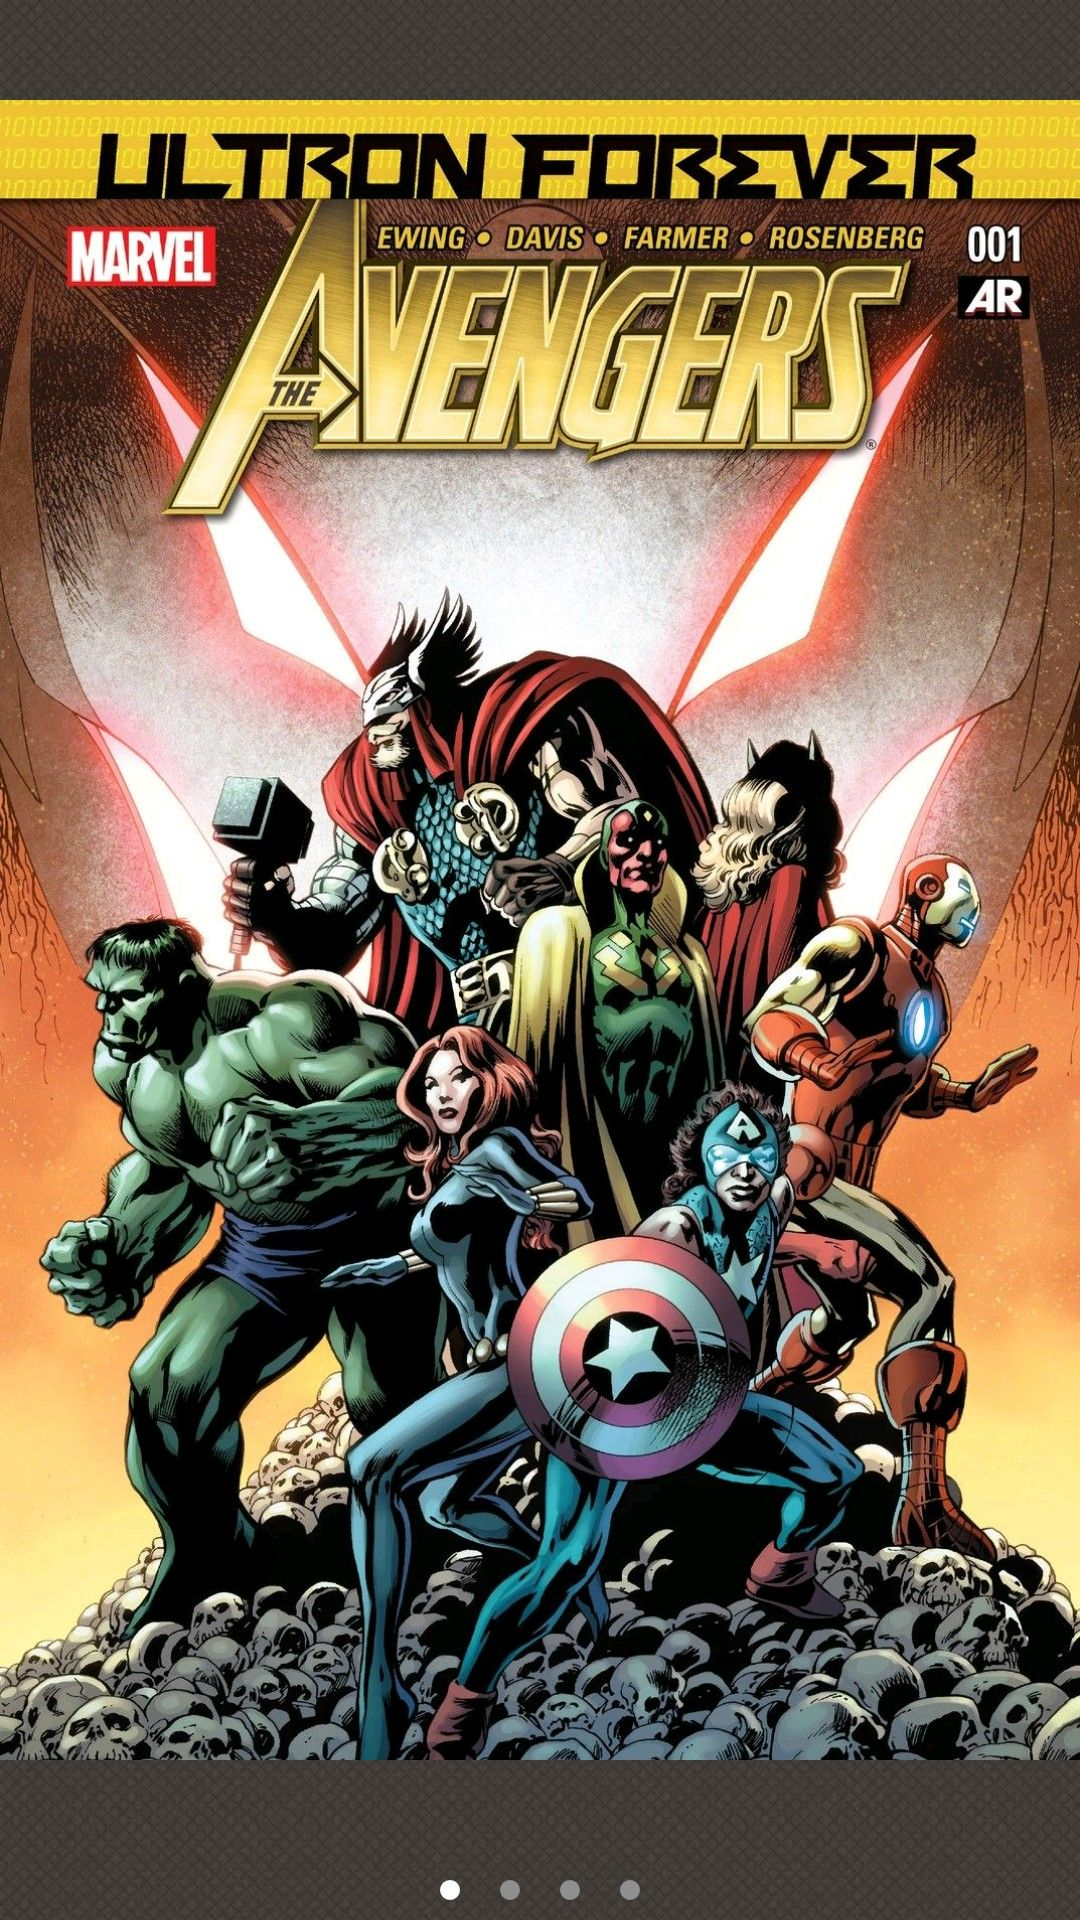 Pin by Trekkers & StarWarsFans on Covers Marvel Comics